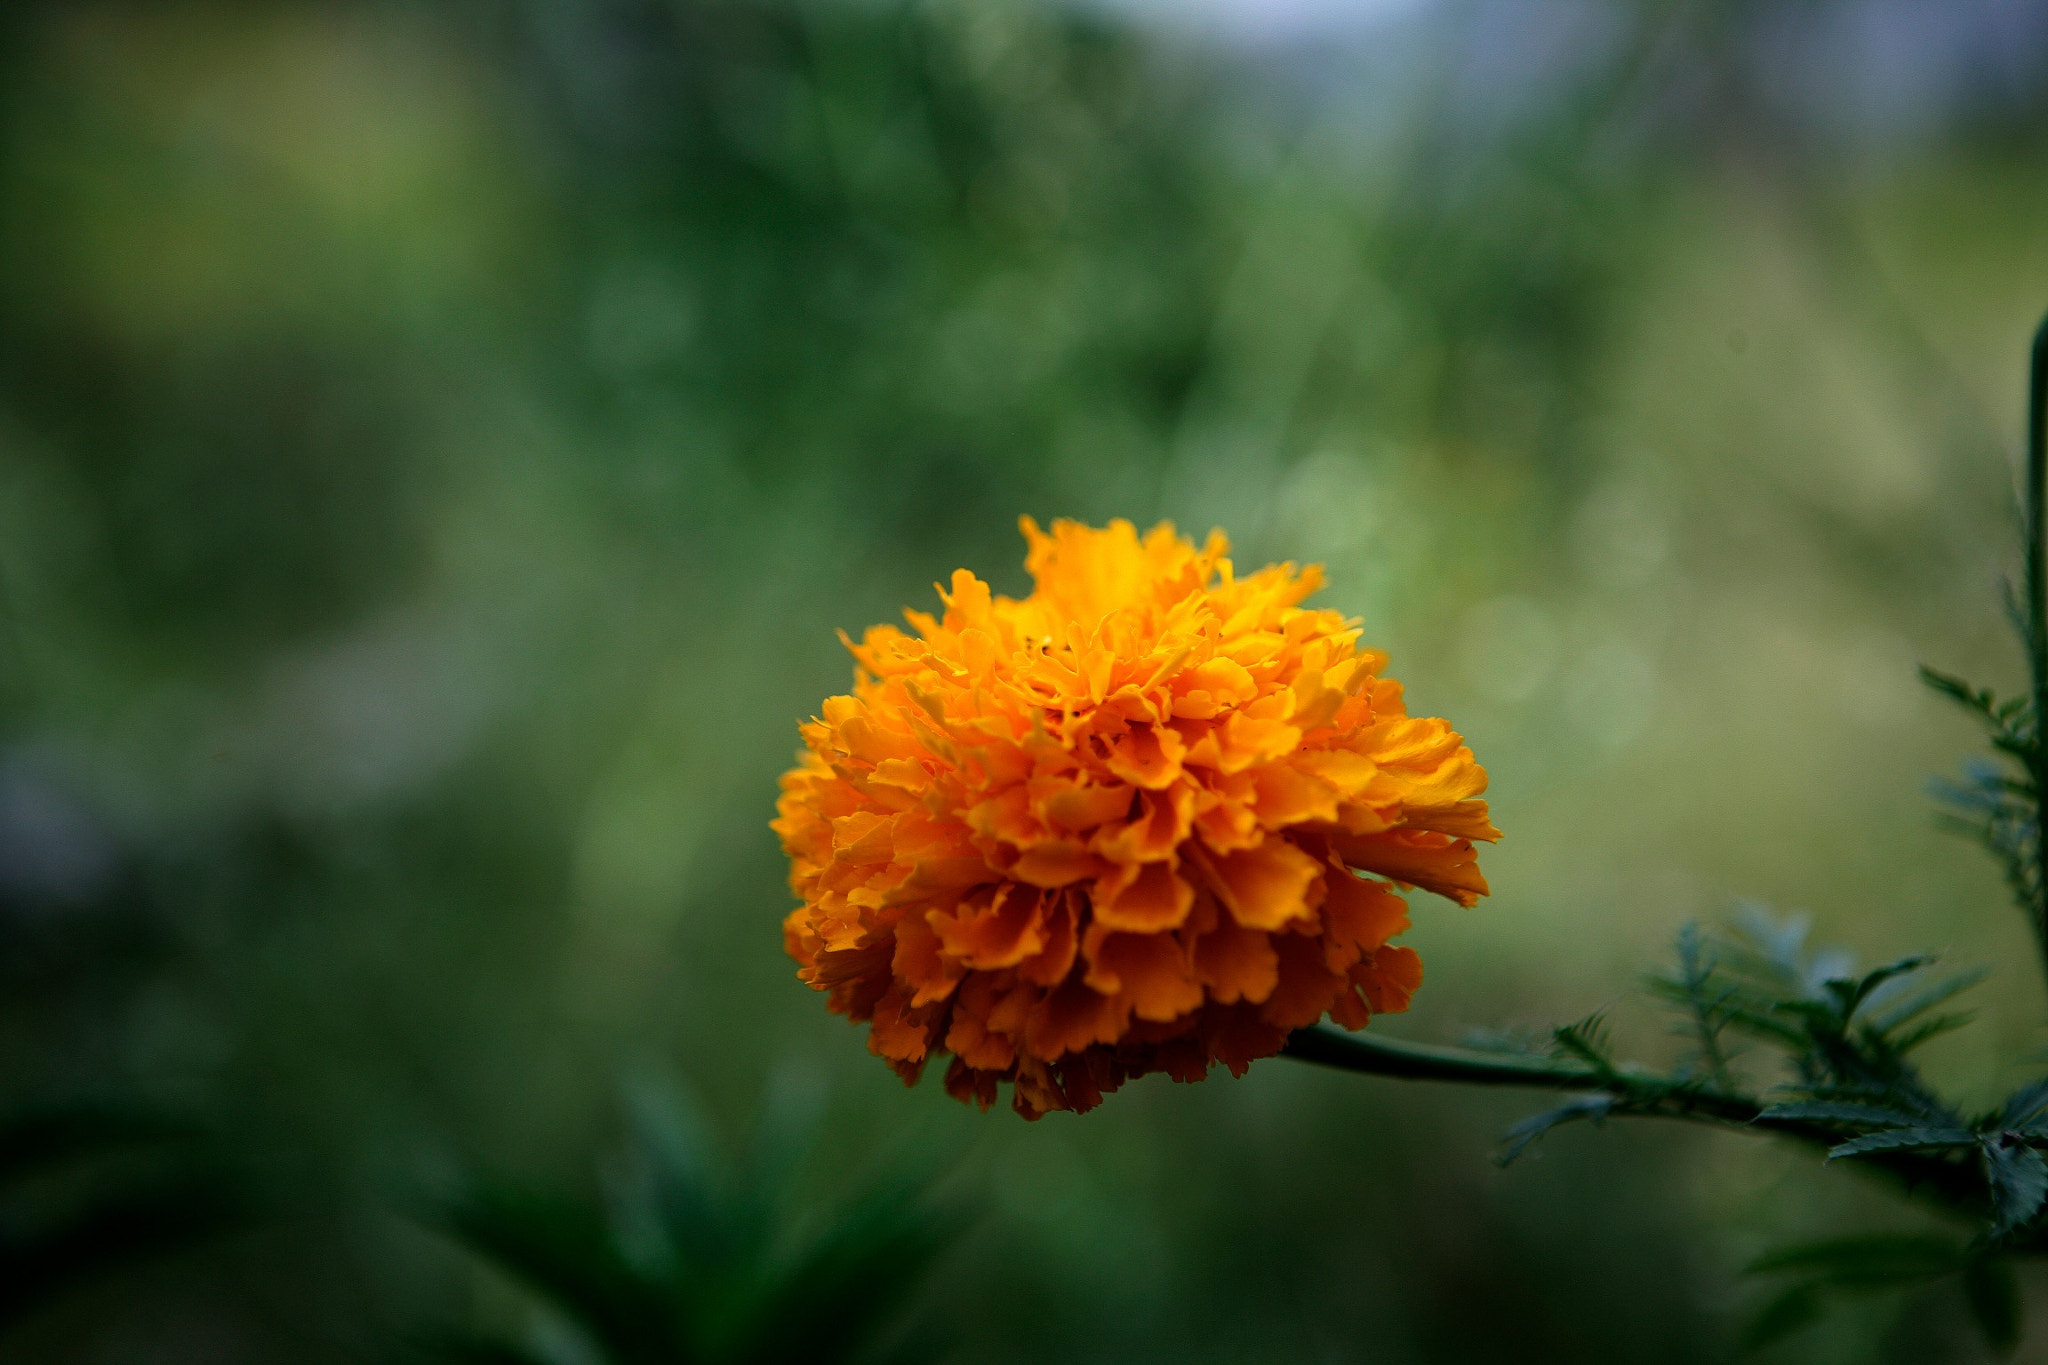 Photograph Pretty yellow flower of the land by Cristobal Garciaferro Rubio on 500px